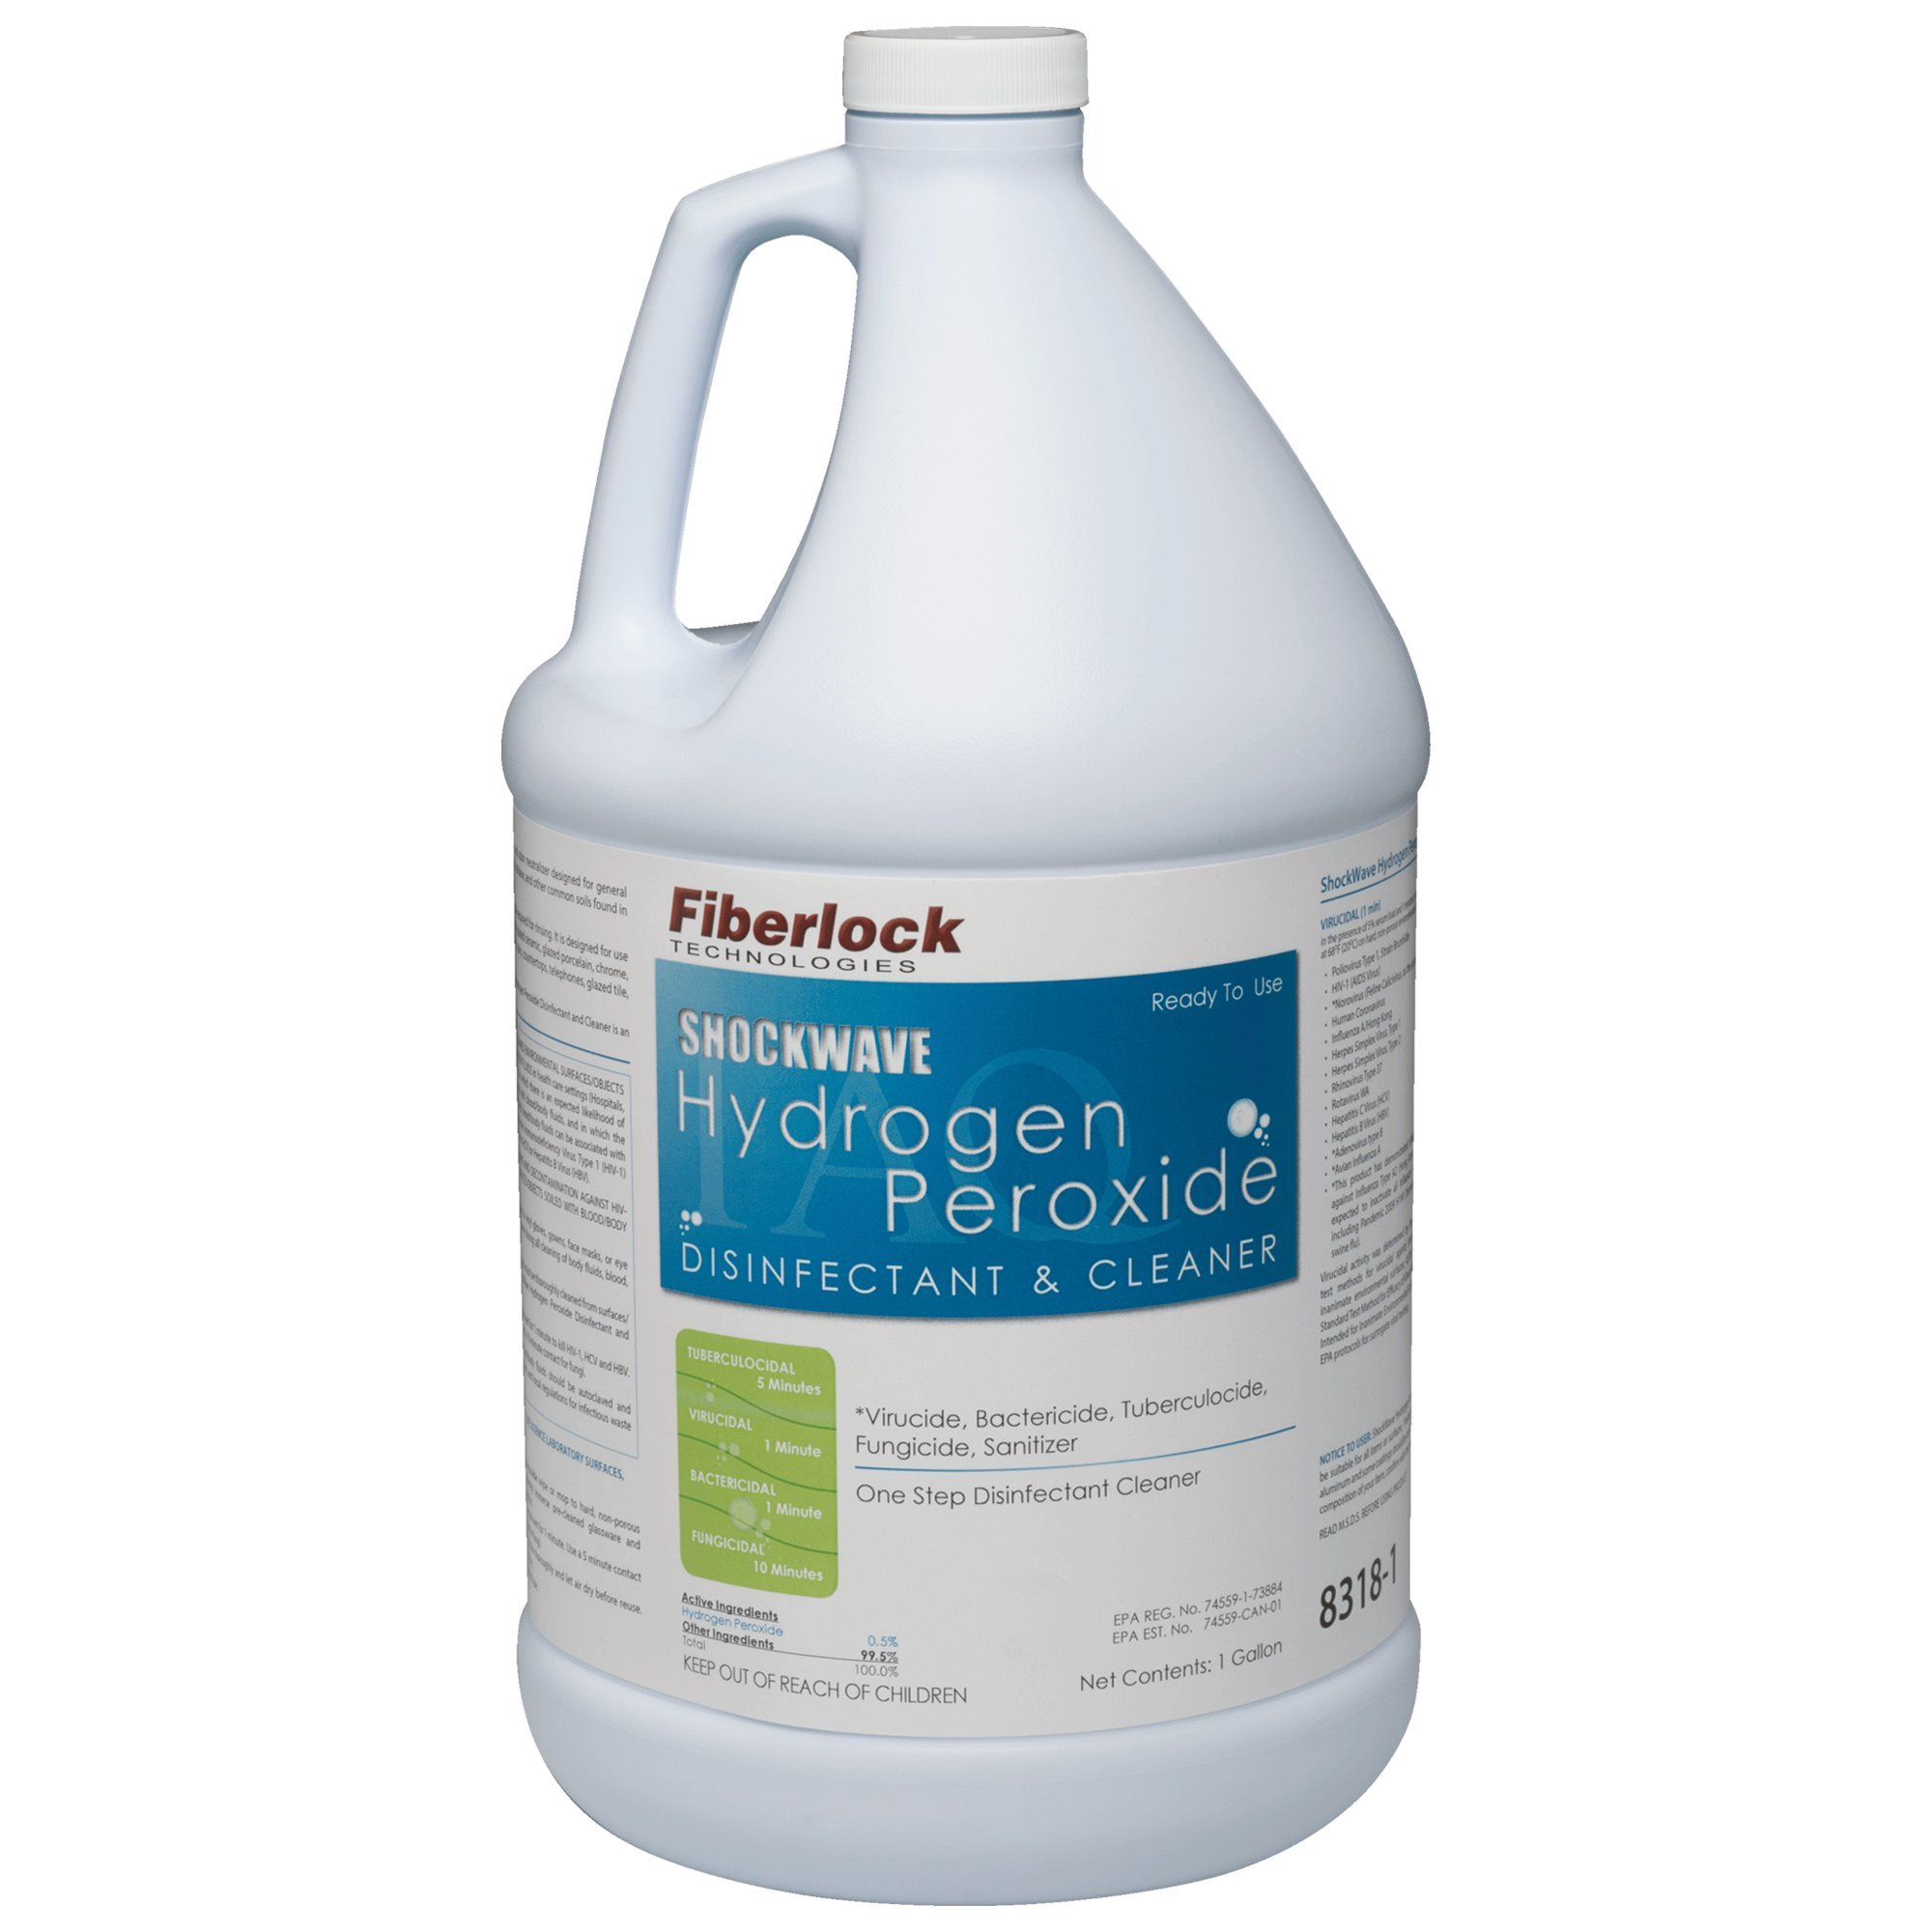 Shockwave 8318 Hydrogen Peroxide Disinfectant and Cleaner - 1 Gallon Bottle